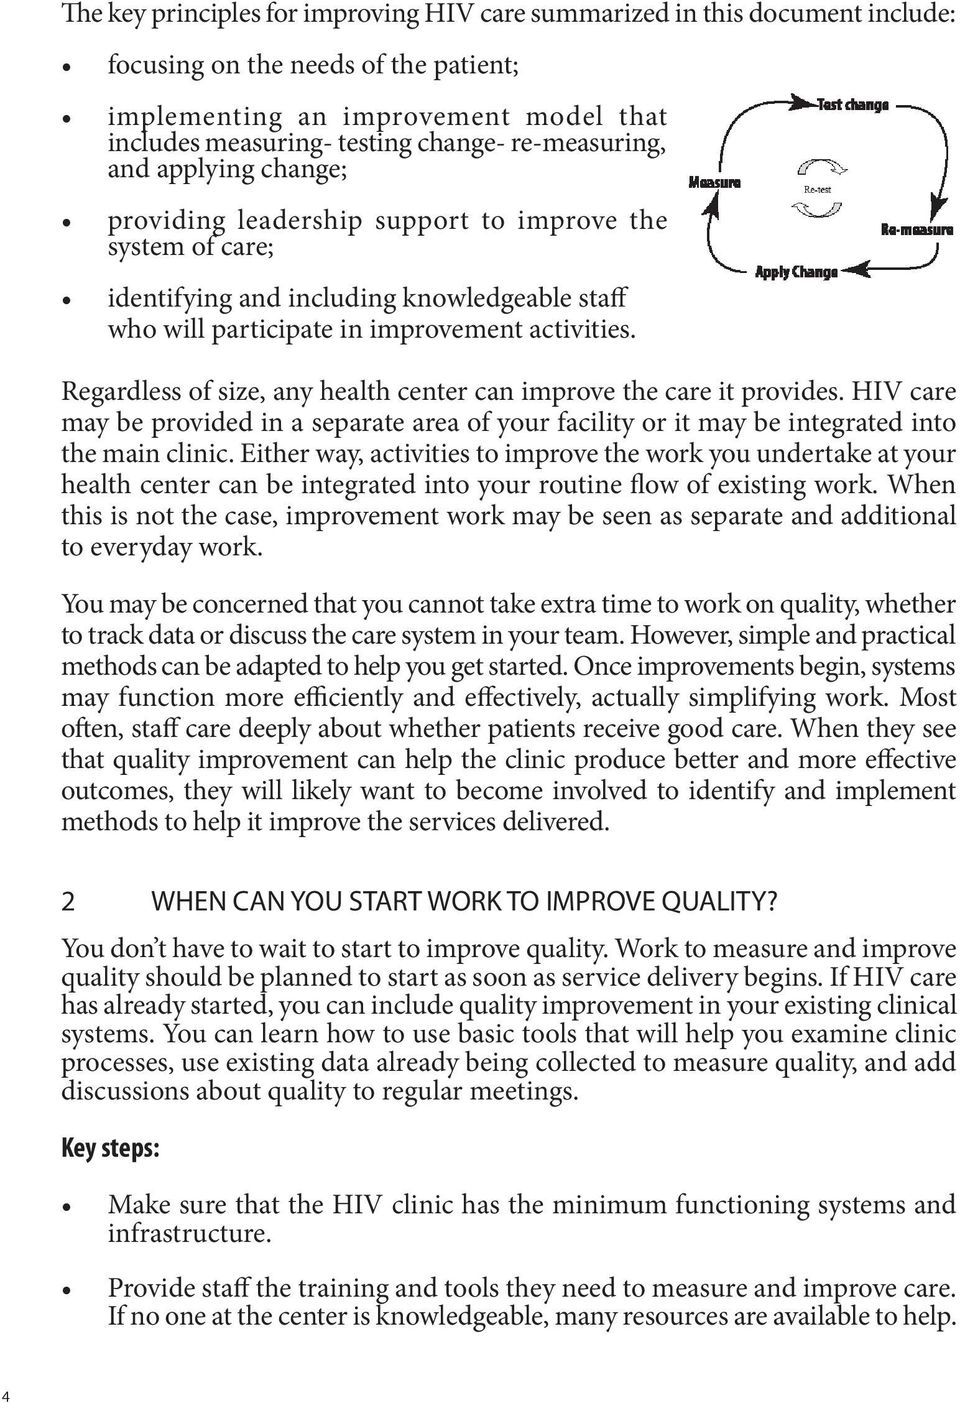 Regardless of size, any health center can improve the care it provides. HIV care may be provided in a separate area of your facility or it may be integrated into the main clinic.